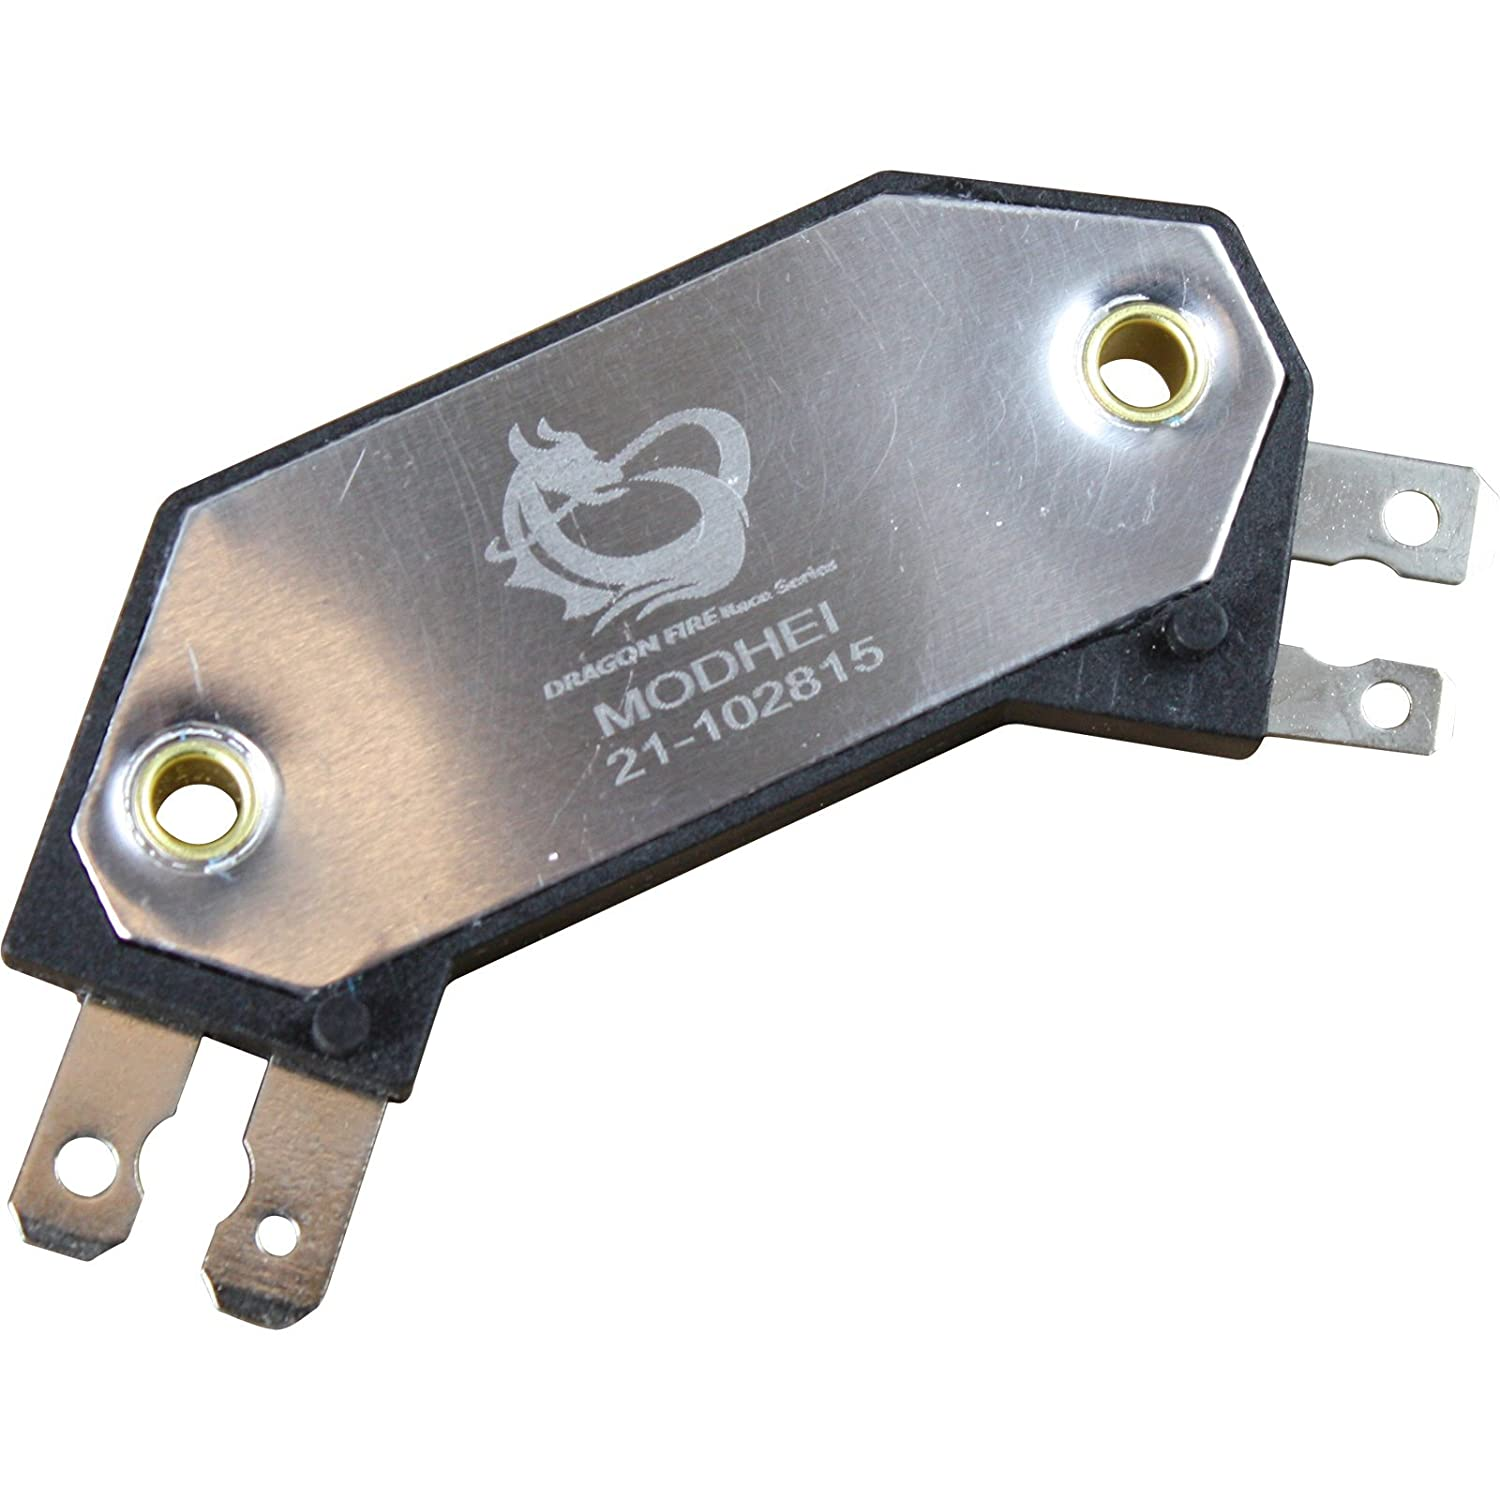 Aip Electronics Premium Hei Ignition Control Module Manufacturerelectro Plate Circuitry Dragon Circuits Compatible Replacement For All Distrbutors Gm V6 And V8 Sbc Bbc Chevy Ford Dodge Pontiac